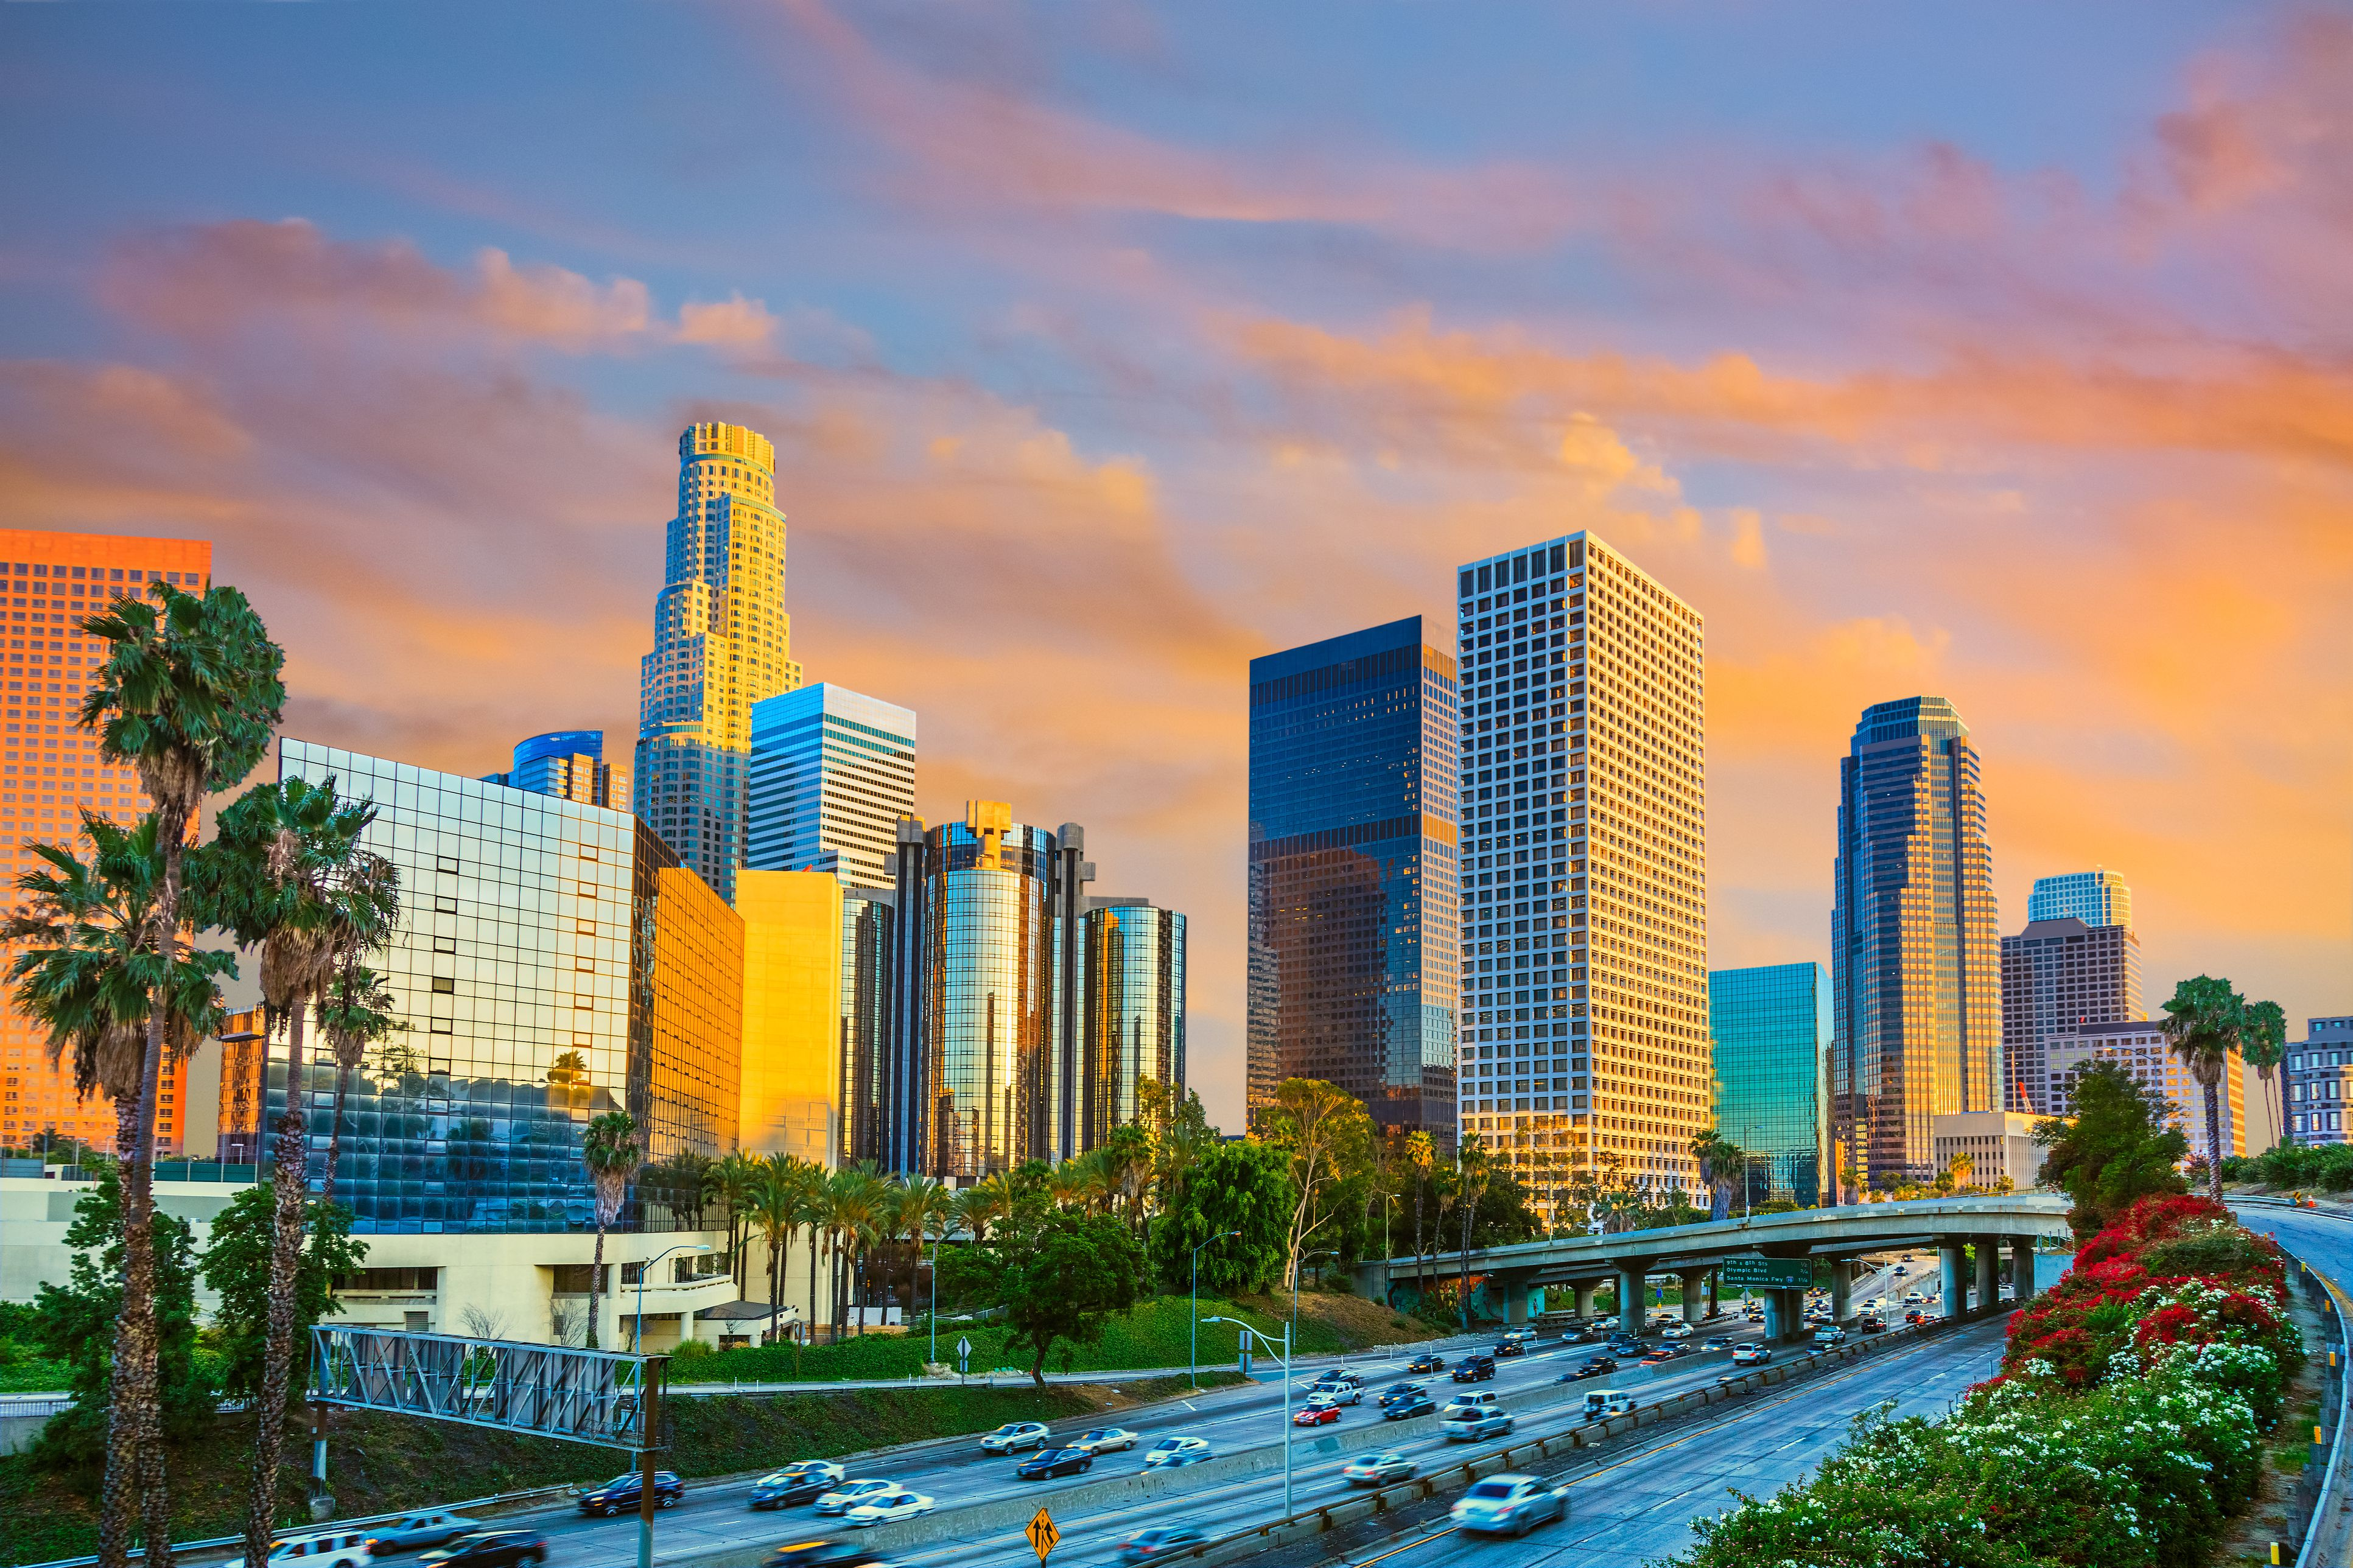 Downtown Los Angeles A Photo Tour And Guide